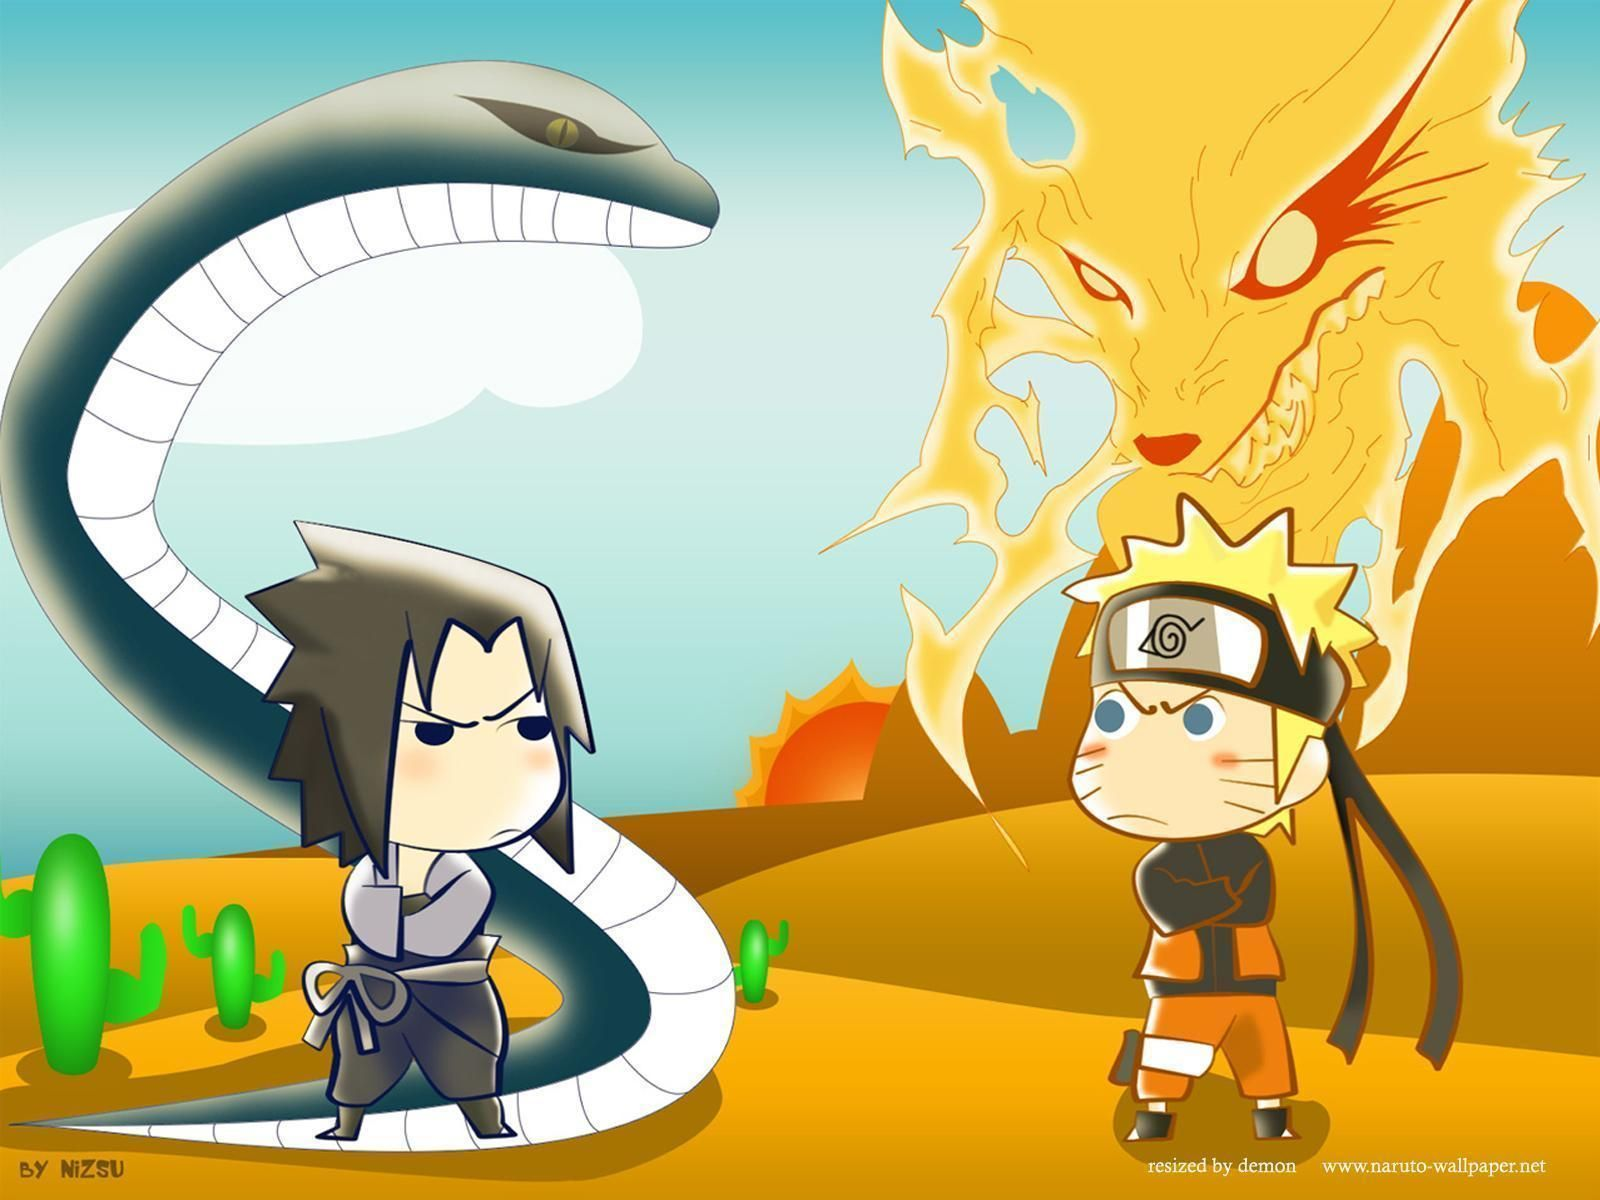 Download Wallpaper Animasi Naruto Bergerak Di 2020 Dengan